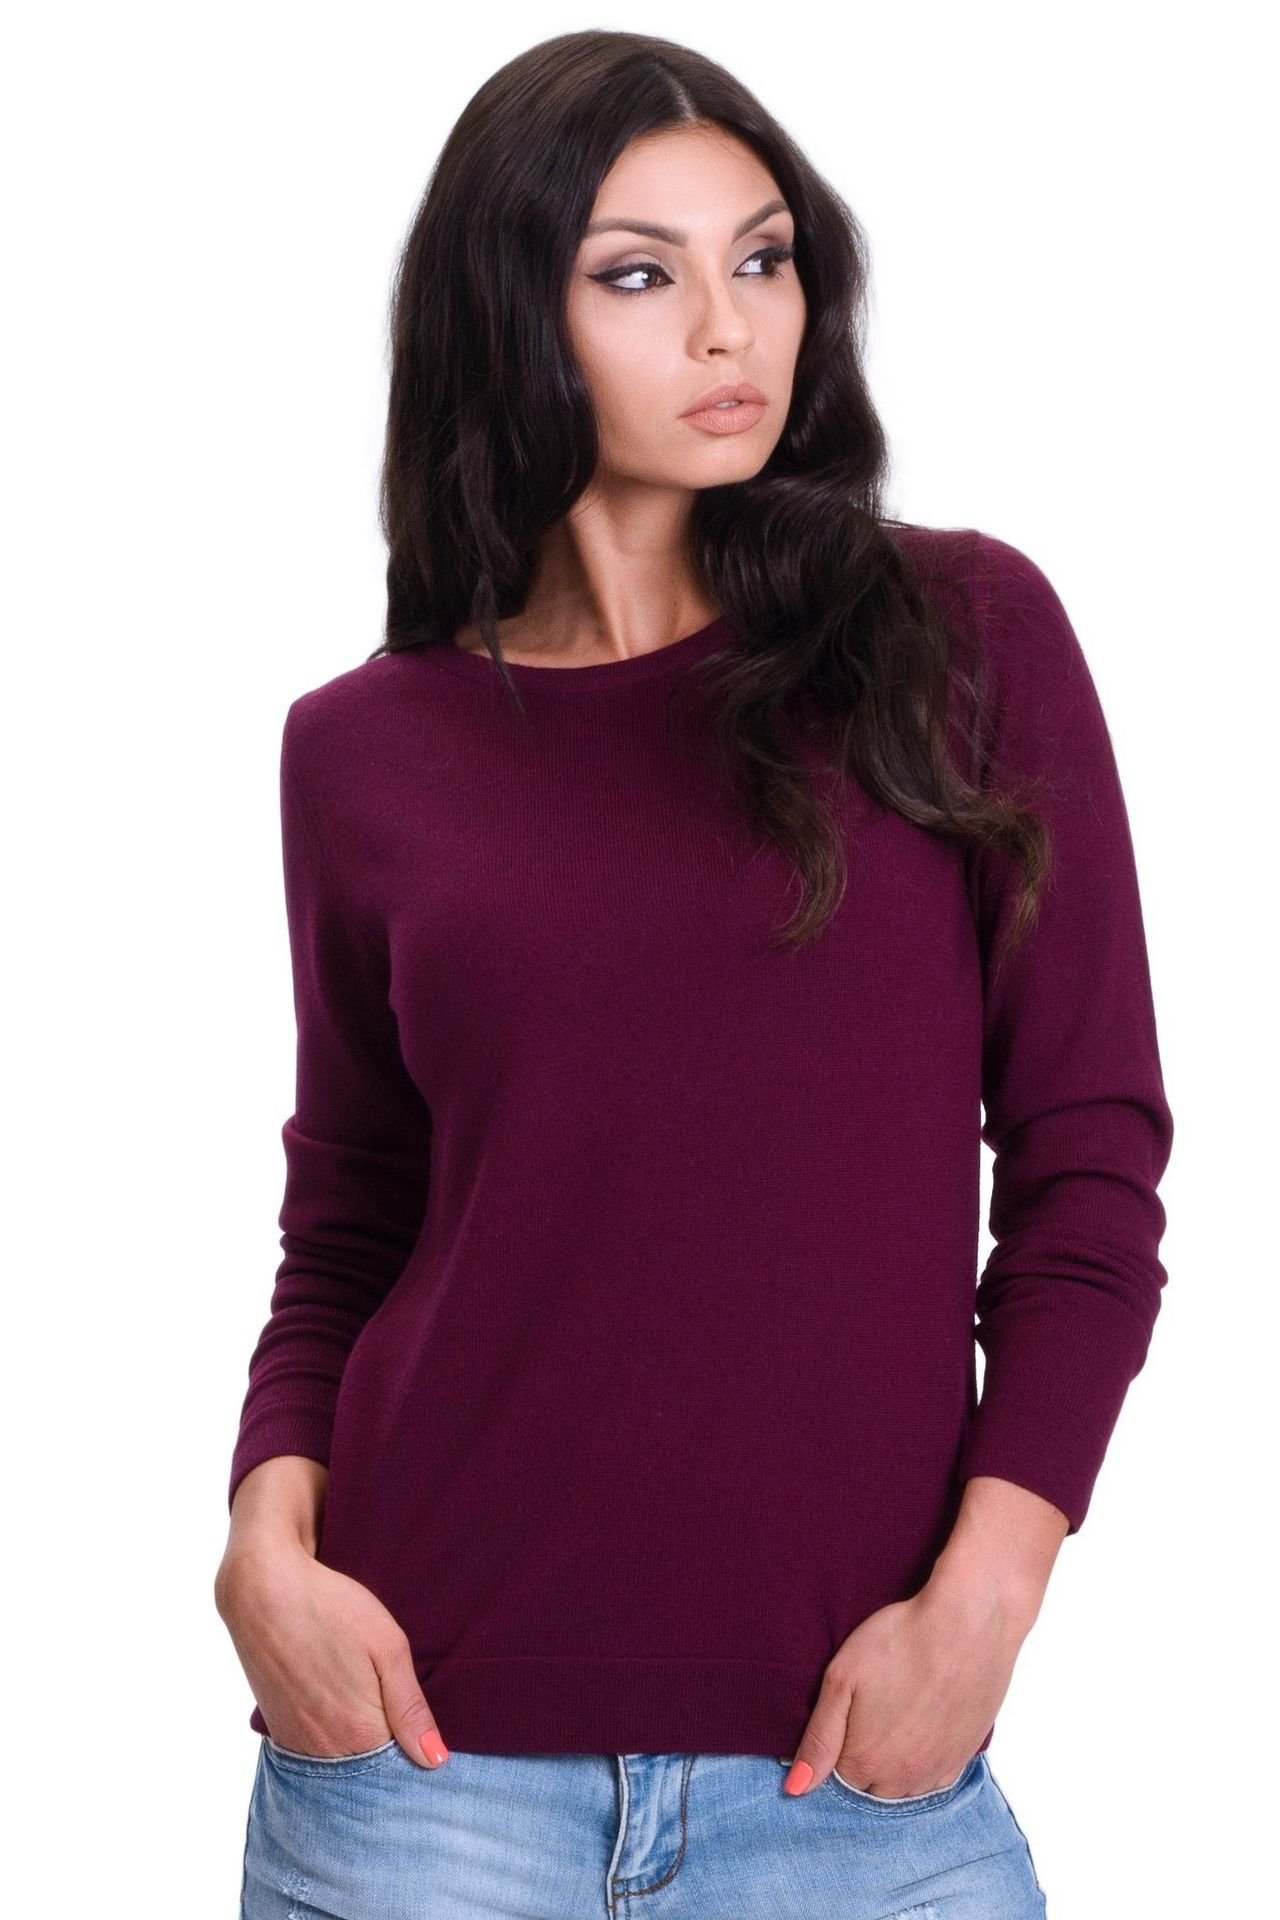 Women's Pure Merino Wool Classic Knit Top Lightweight Crew Neck Sweater Long Sleeve Pullover (Large, Burgundy)